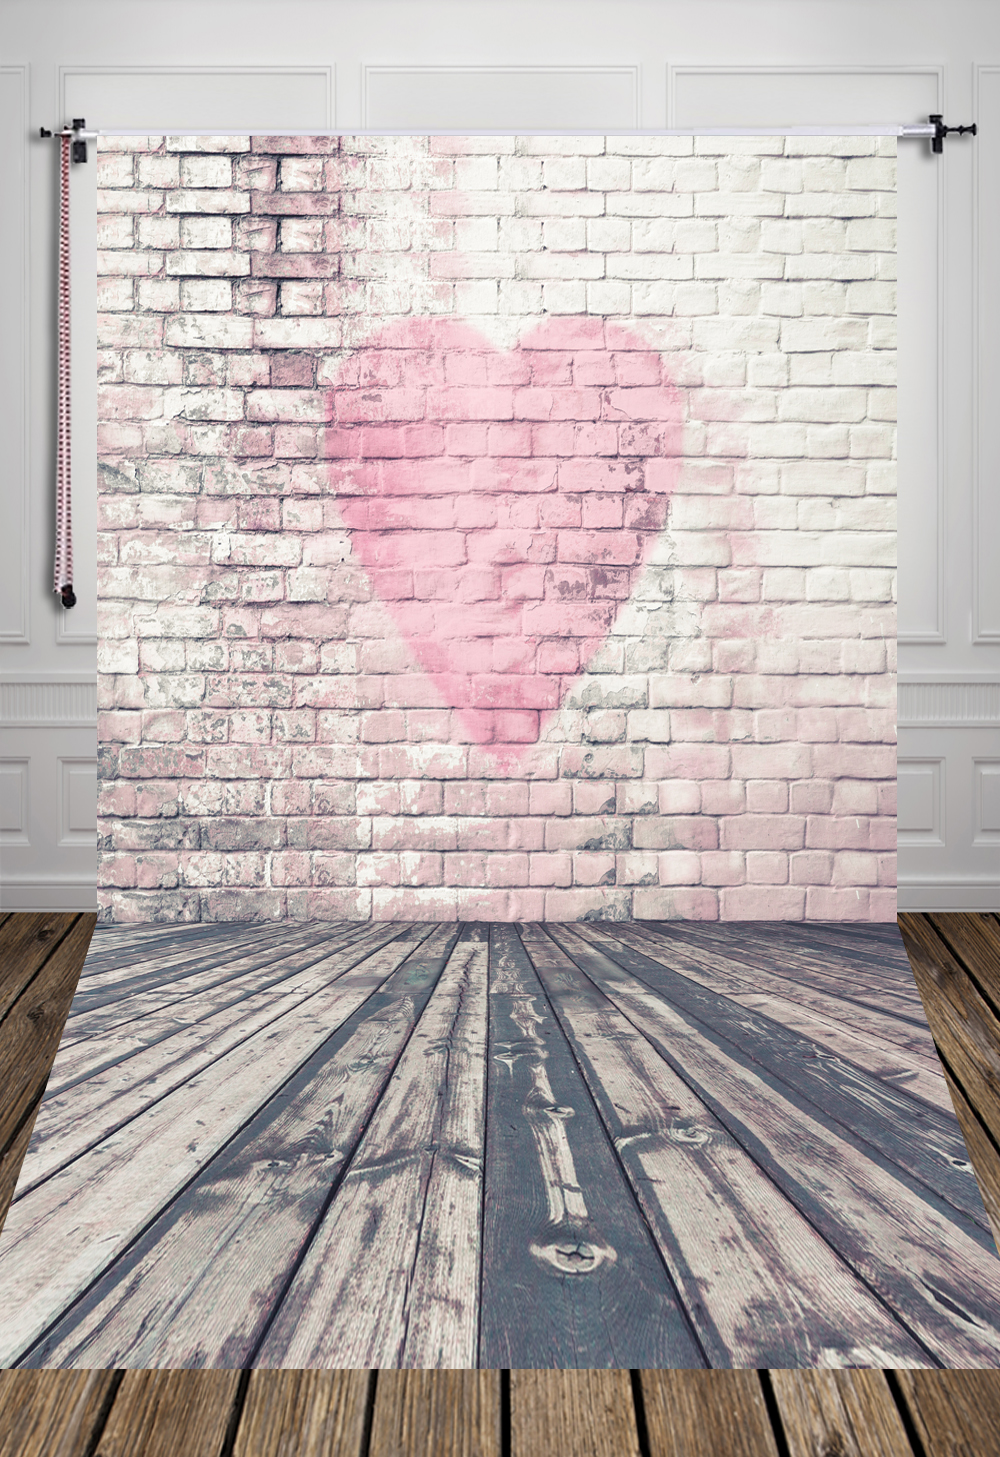 pink bricks and wood floor photography background made of  Art fabric painted pink heart for studio newborn D-1496<br><br>Aliexpress